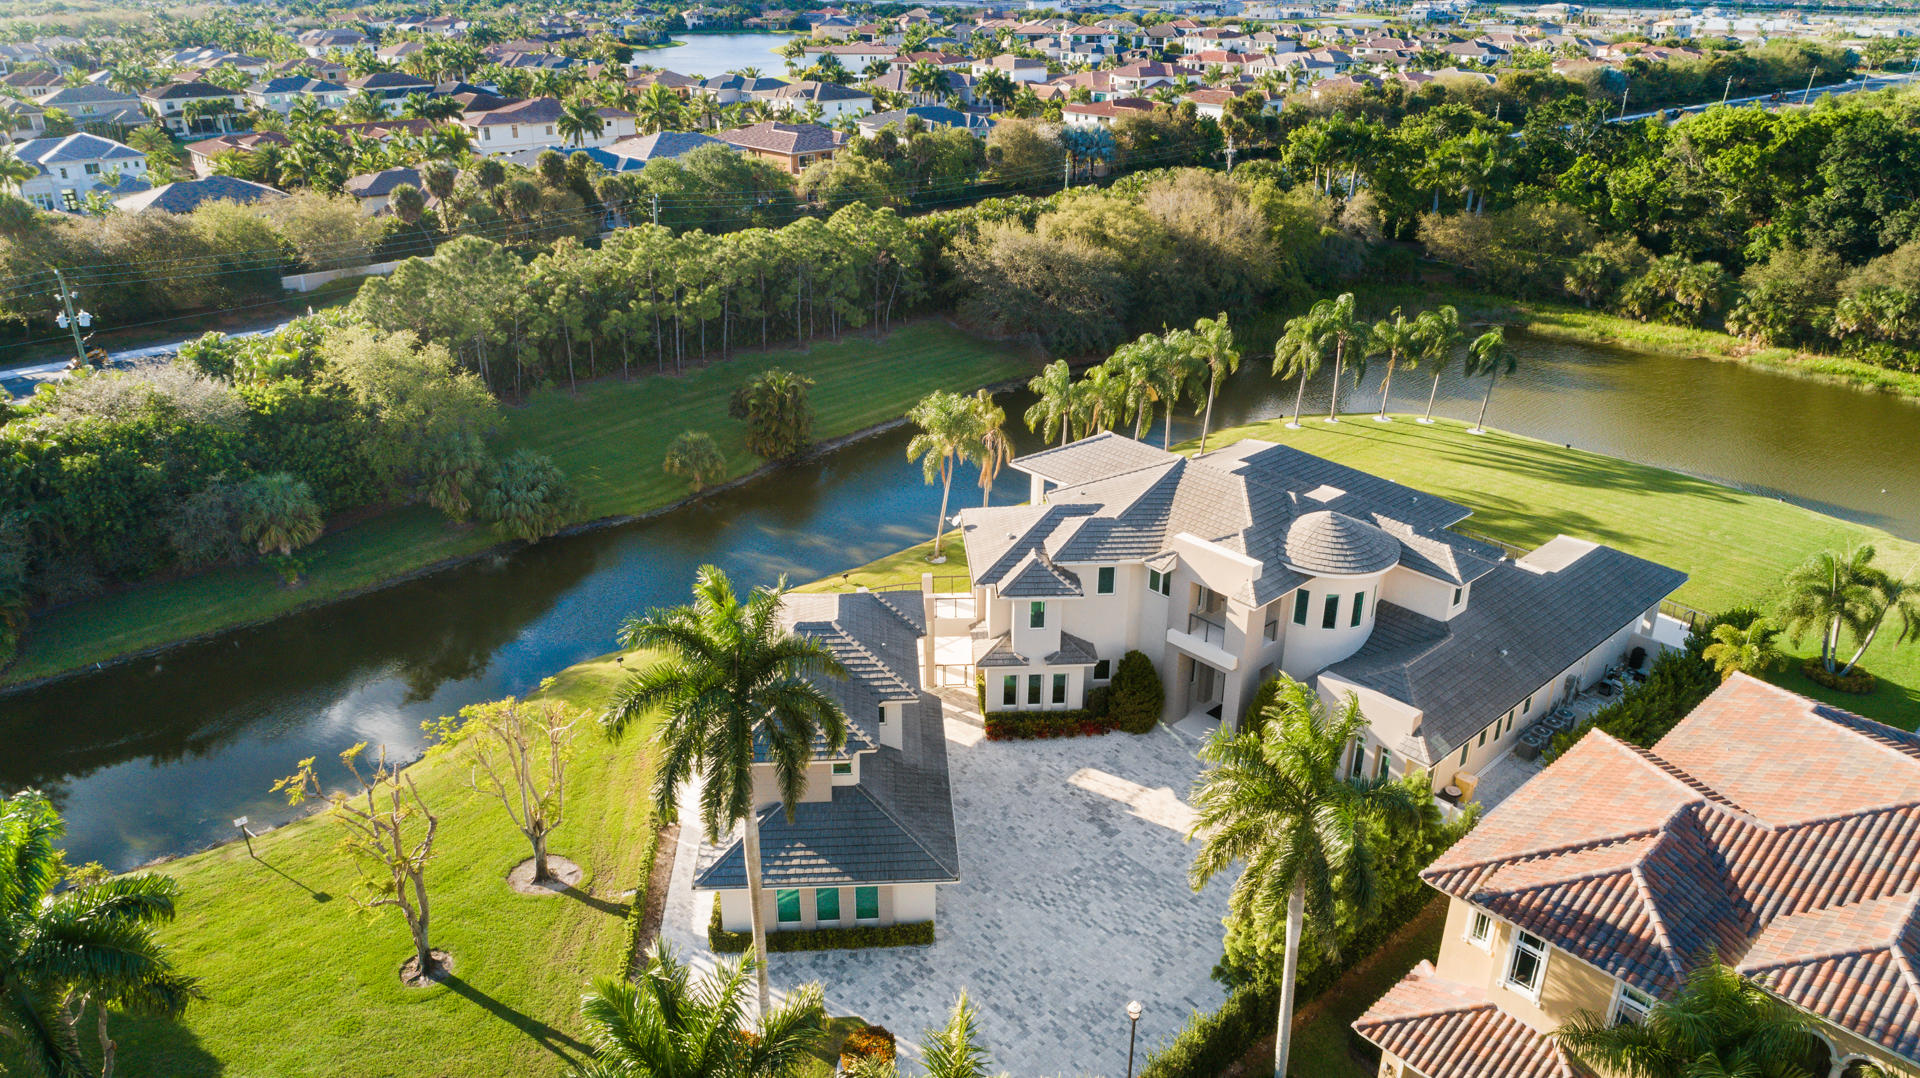 17106 Le Rivage Avenue, Boca Raton, Florida 33496, 5 Bedrooms Bedrooms, ,5.1 BathroomsBathrooms,Single Family,For Sale,LE RIVAGE,Le Rivage,RX-10516787